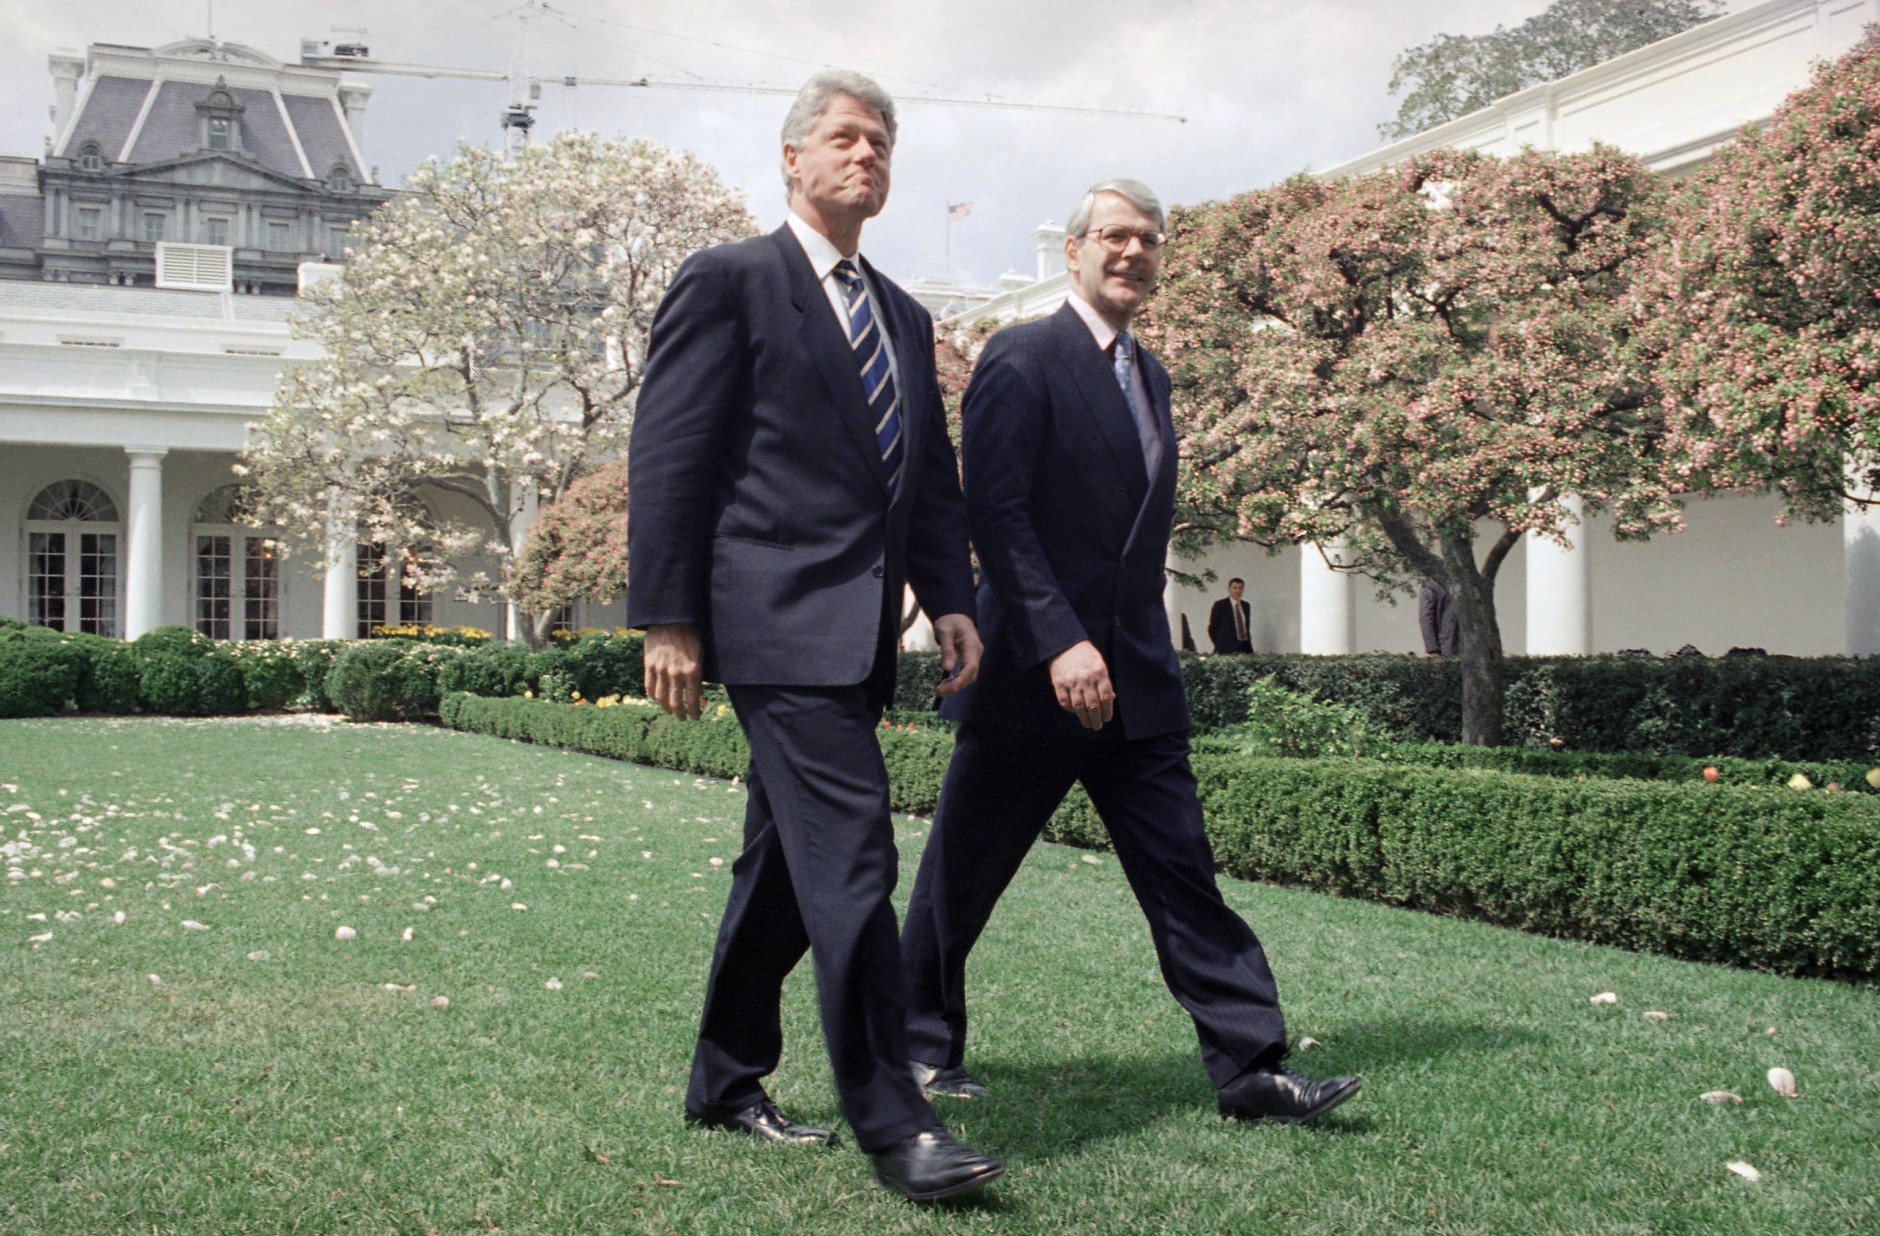 President Bill Clinton and British Prime Minister John Major walk in the Rose Garden of the White House in Washington  Thursday, April 4, 1995, after their oval office meeting. The two men were to have a joint news conference on Tuesday  afternoon. (AP Photo/Marcy Nighswander)